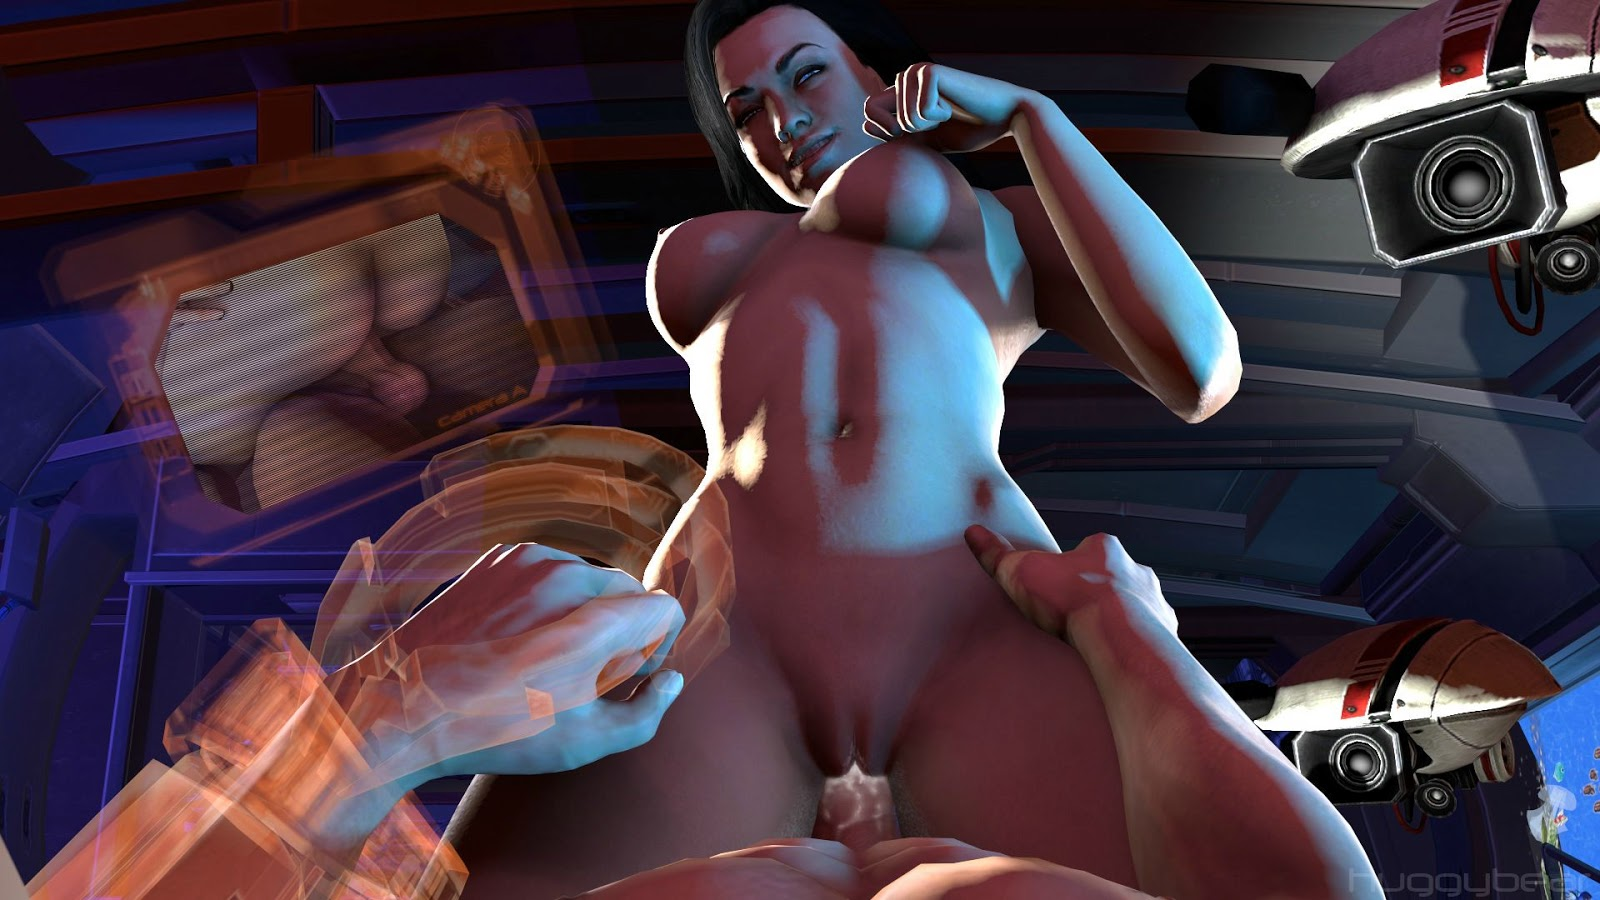 Mass effect porn picture naked gallery